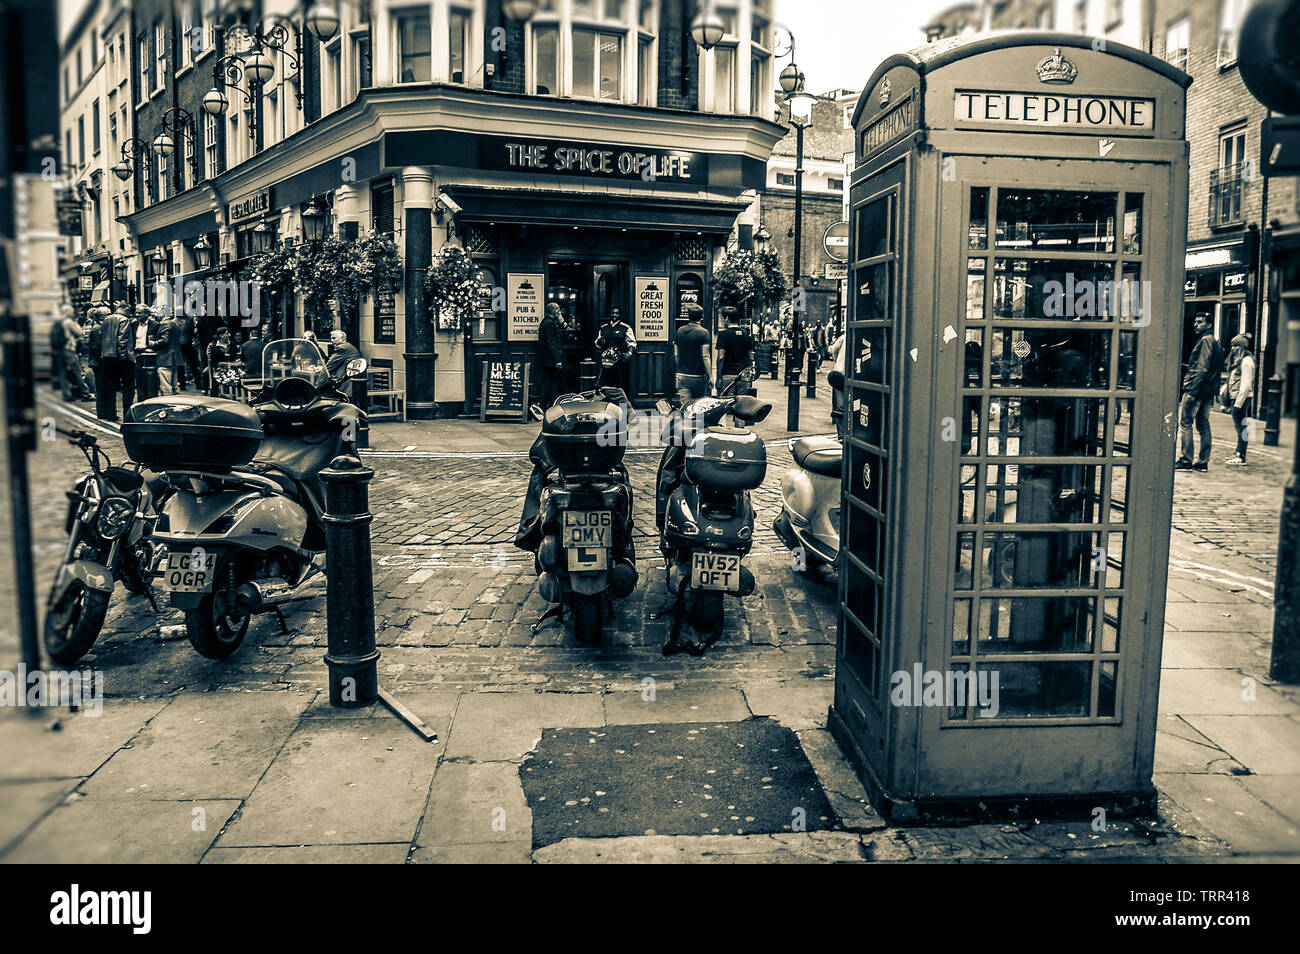 Telephone cabin in front of 'The Spice of Life', London, UK - Stock Image